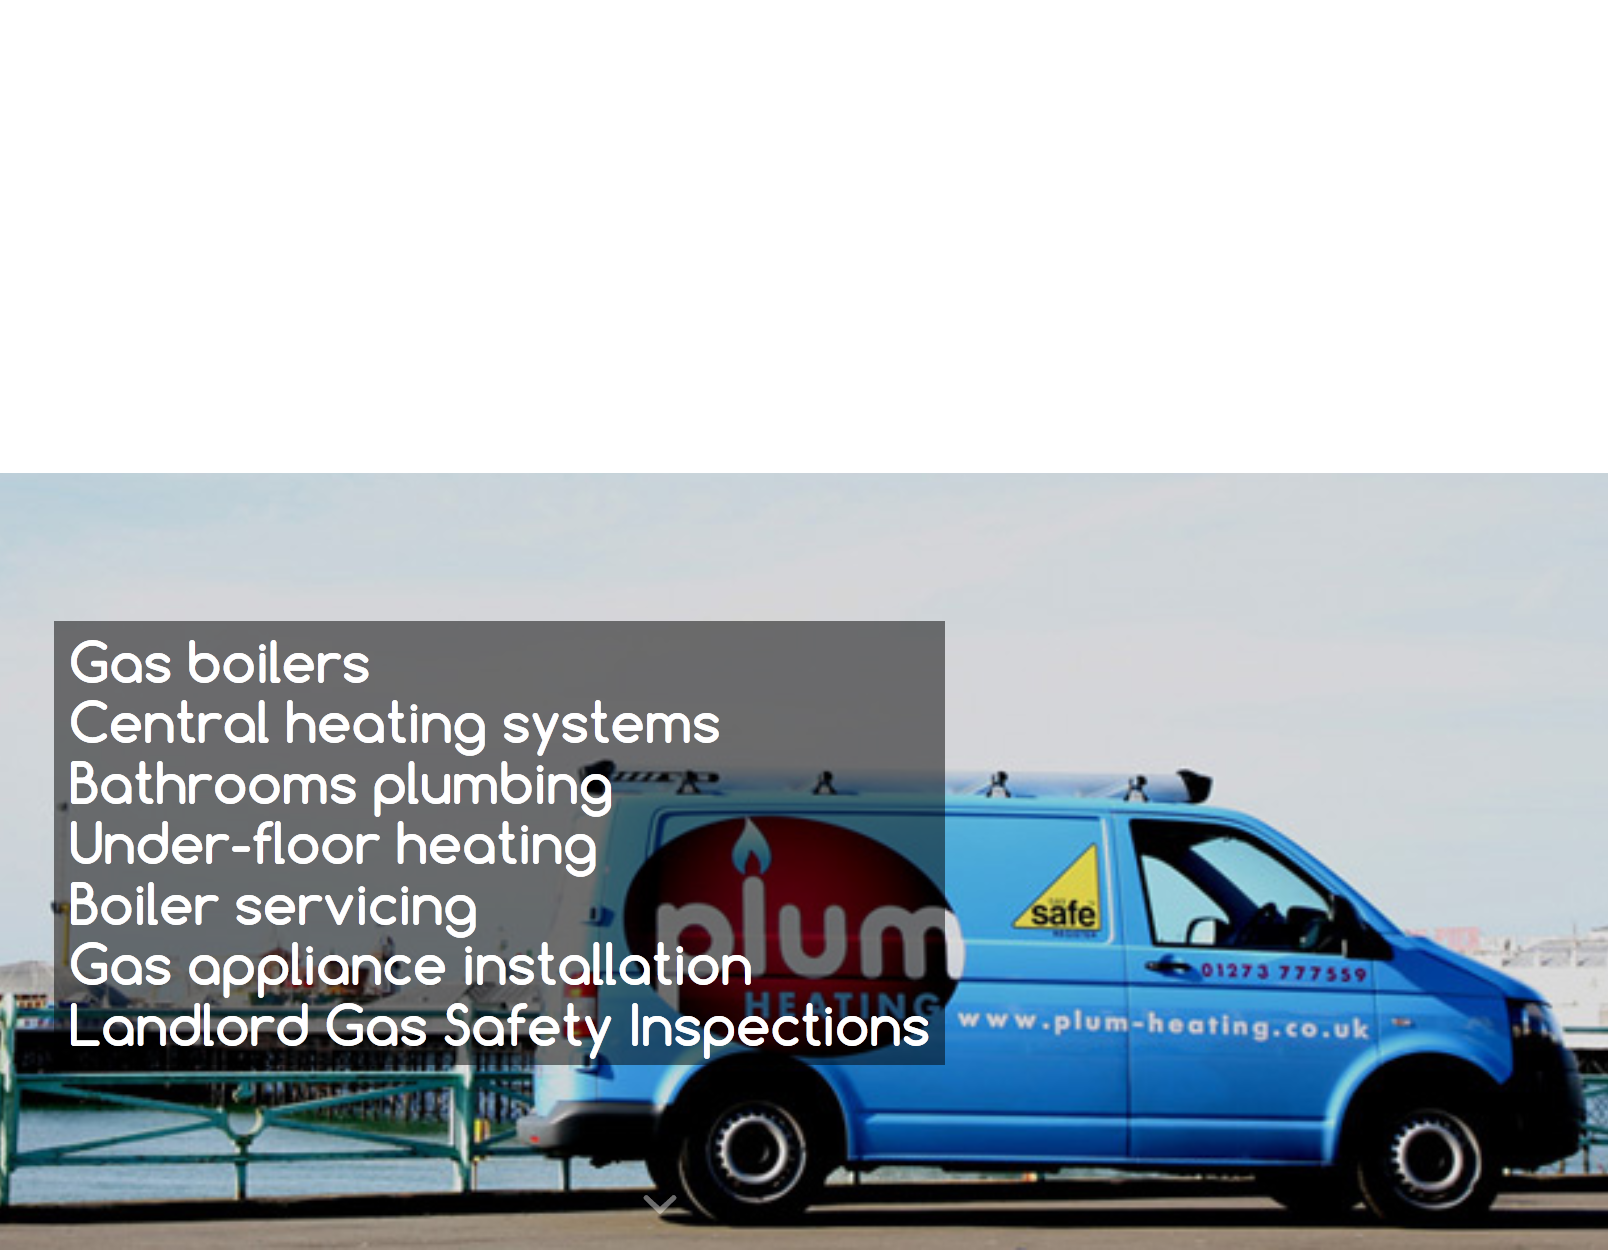 Brighton plumbing and heating engineers